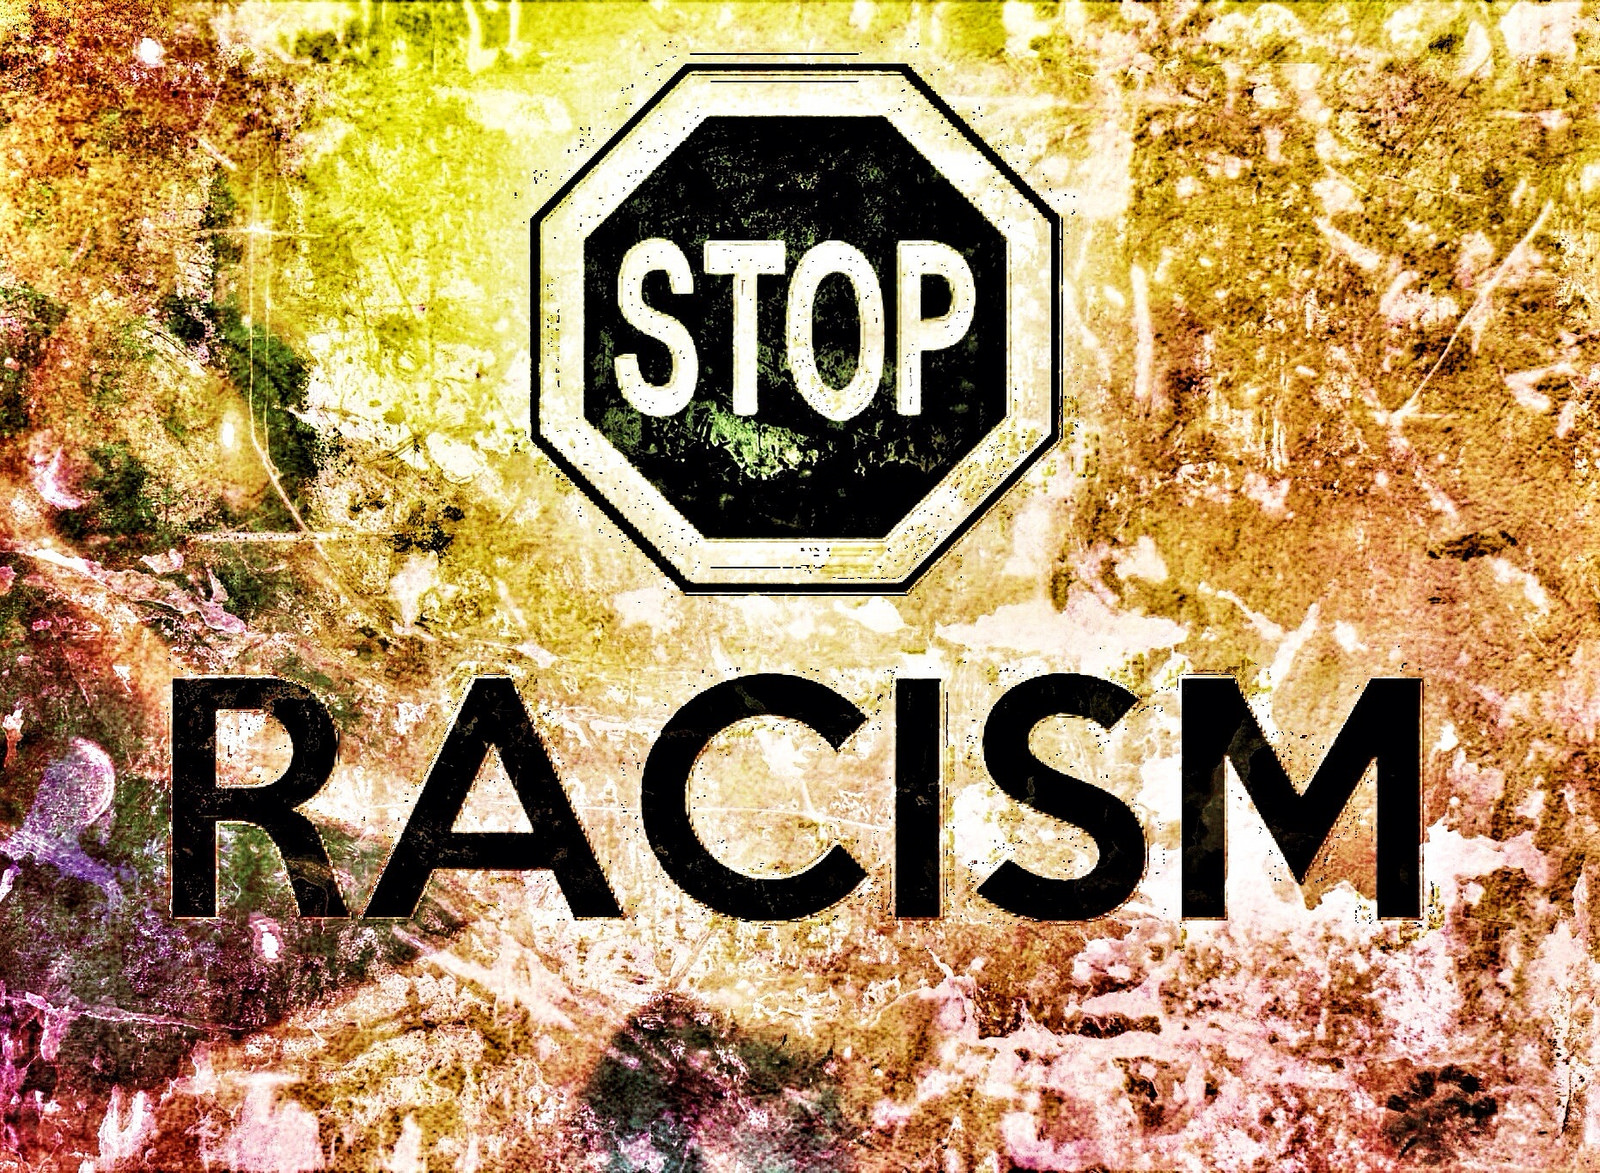 A brief comment on racism